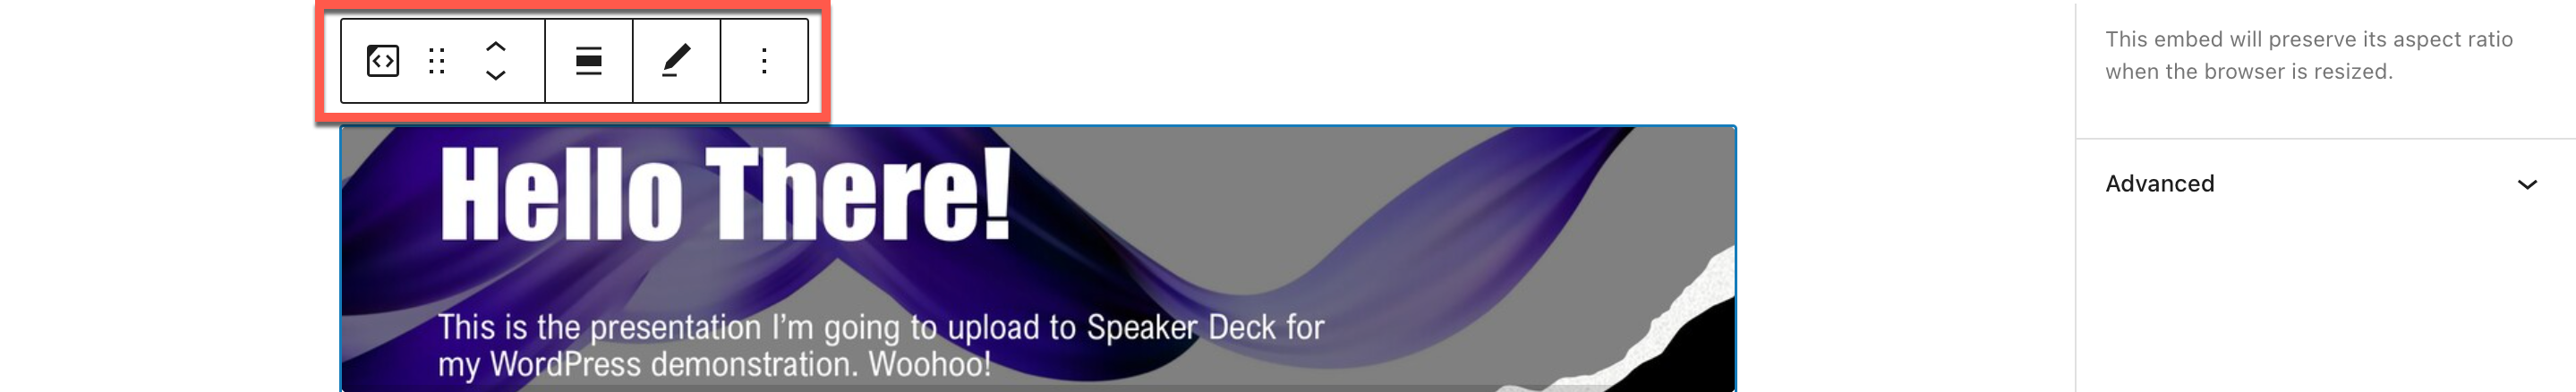 how-to-use-the-wordpress-speaker-deck-embed-block-9 如何使用 WordPress Speaker Deck 嵌入块